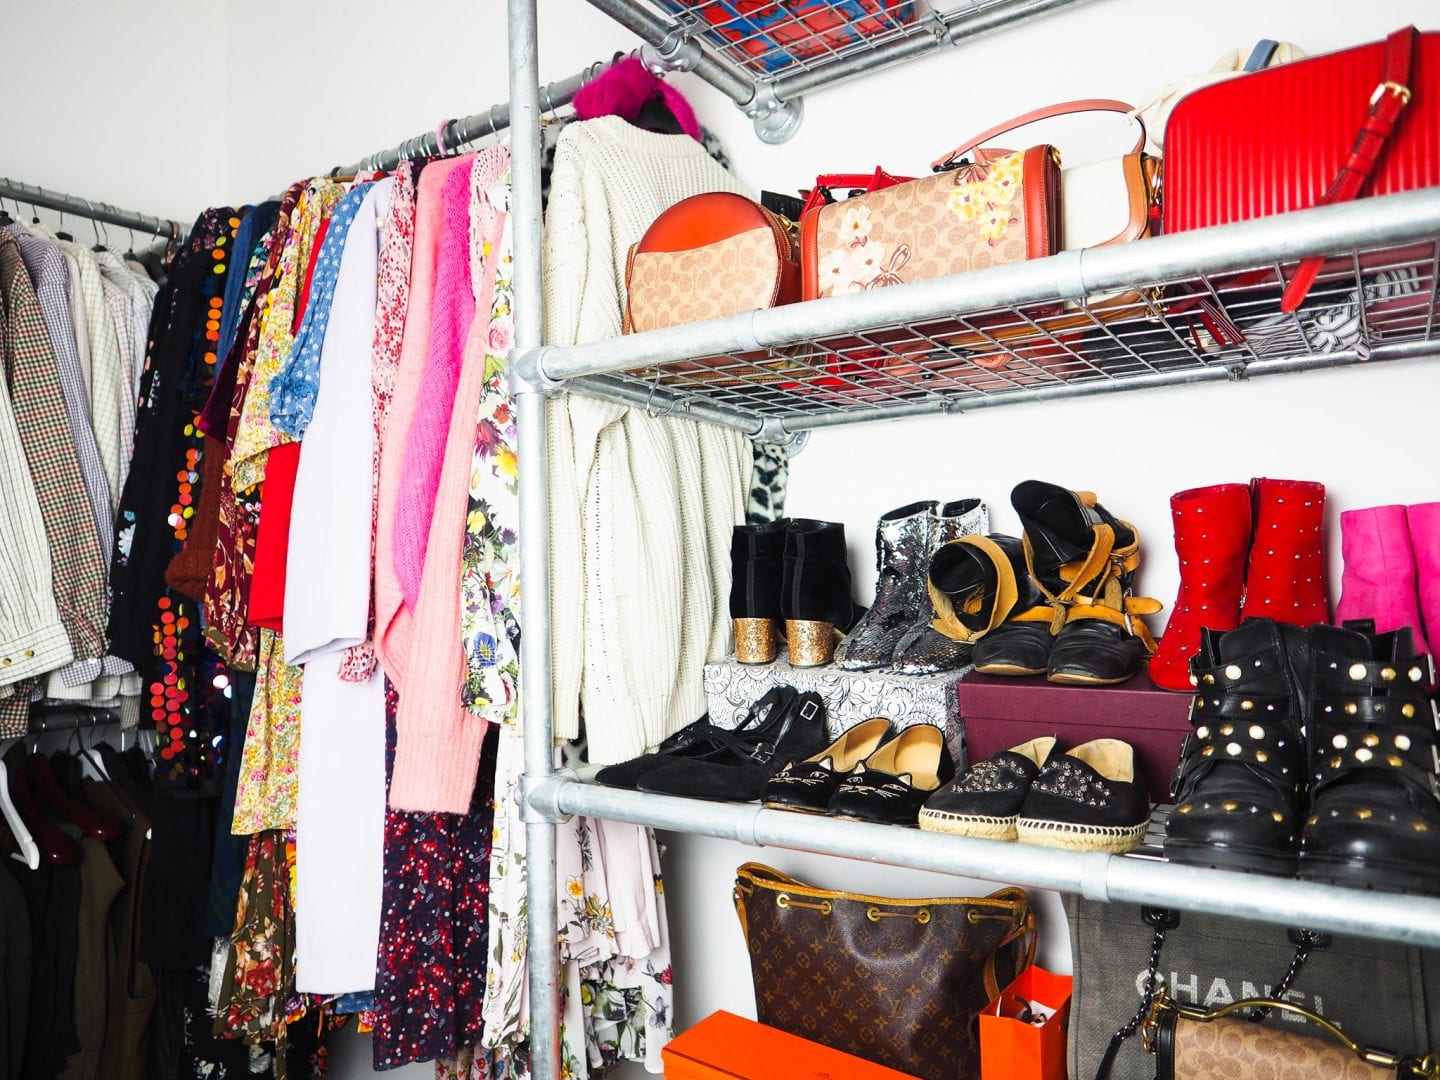 coach-bags-chanel-bags-walk-in-wardrobe Declutter Your Wardrobe